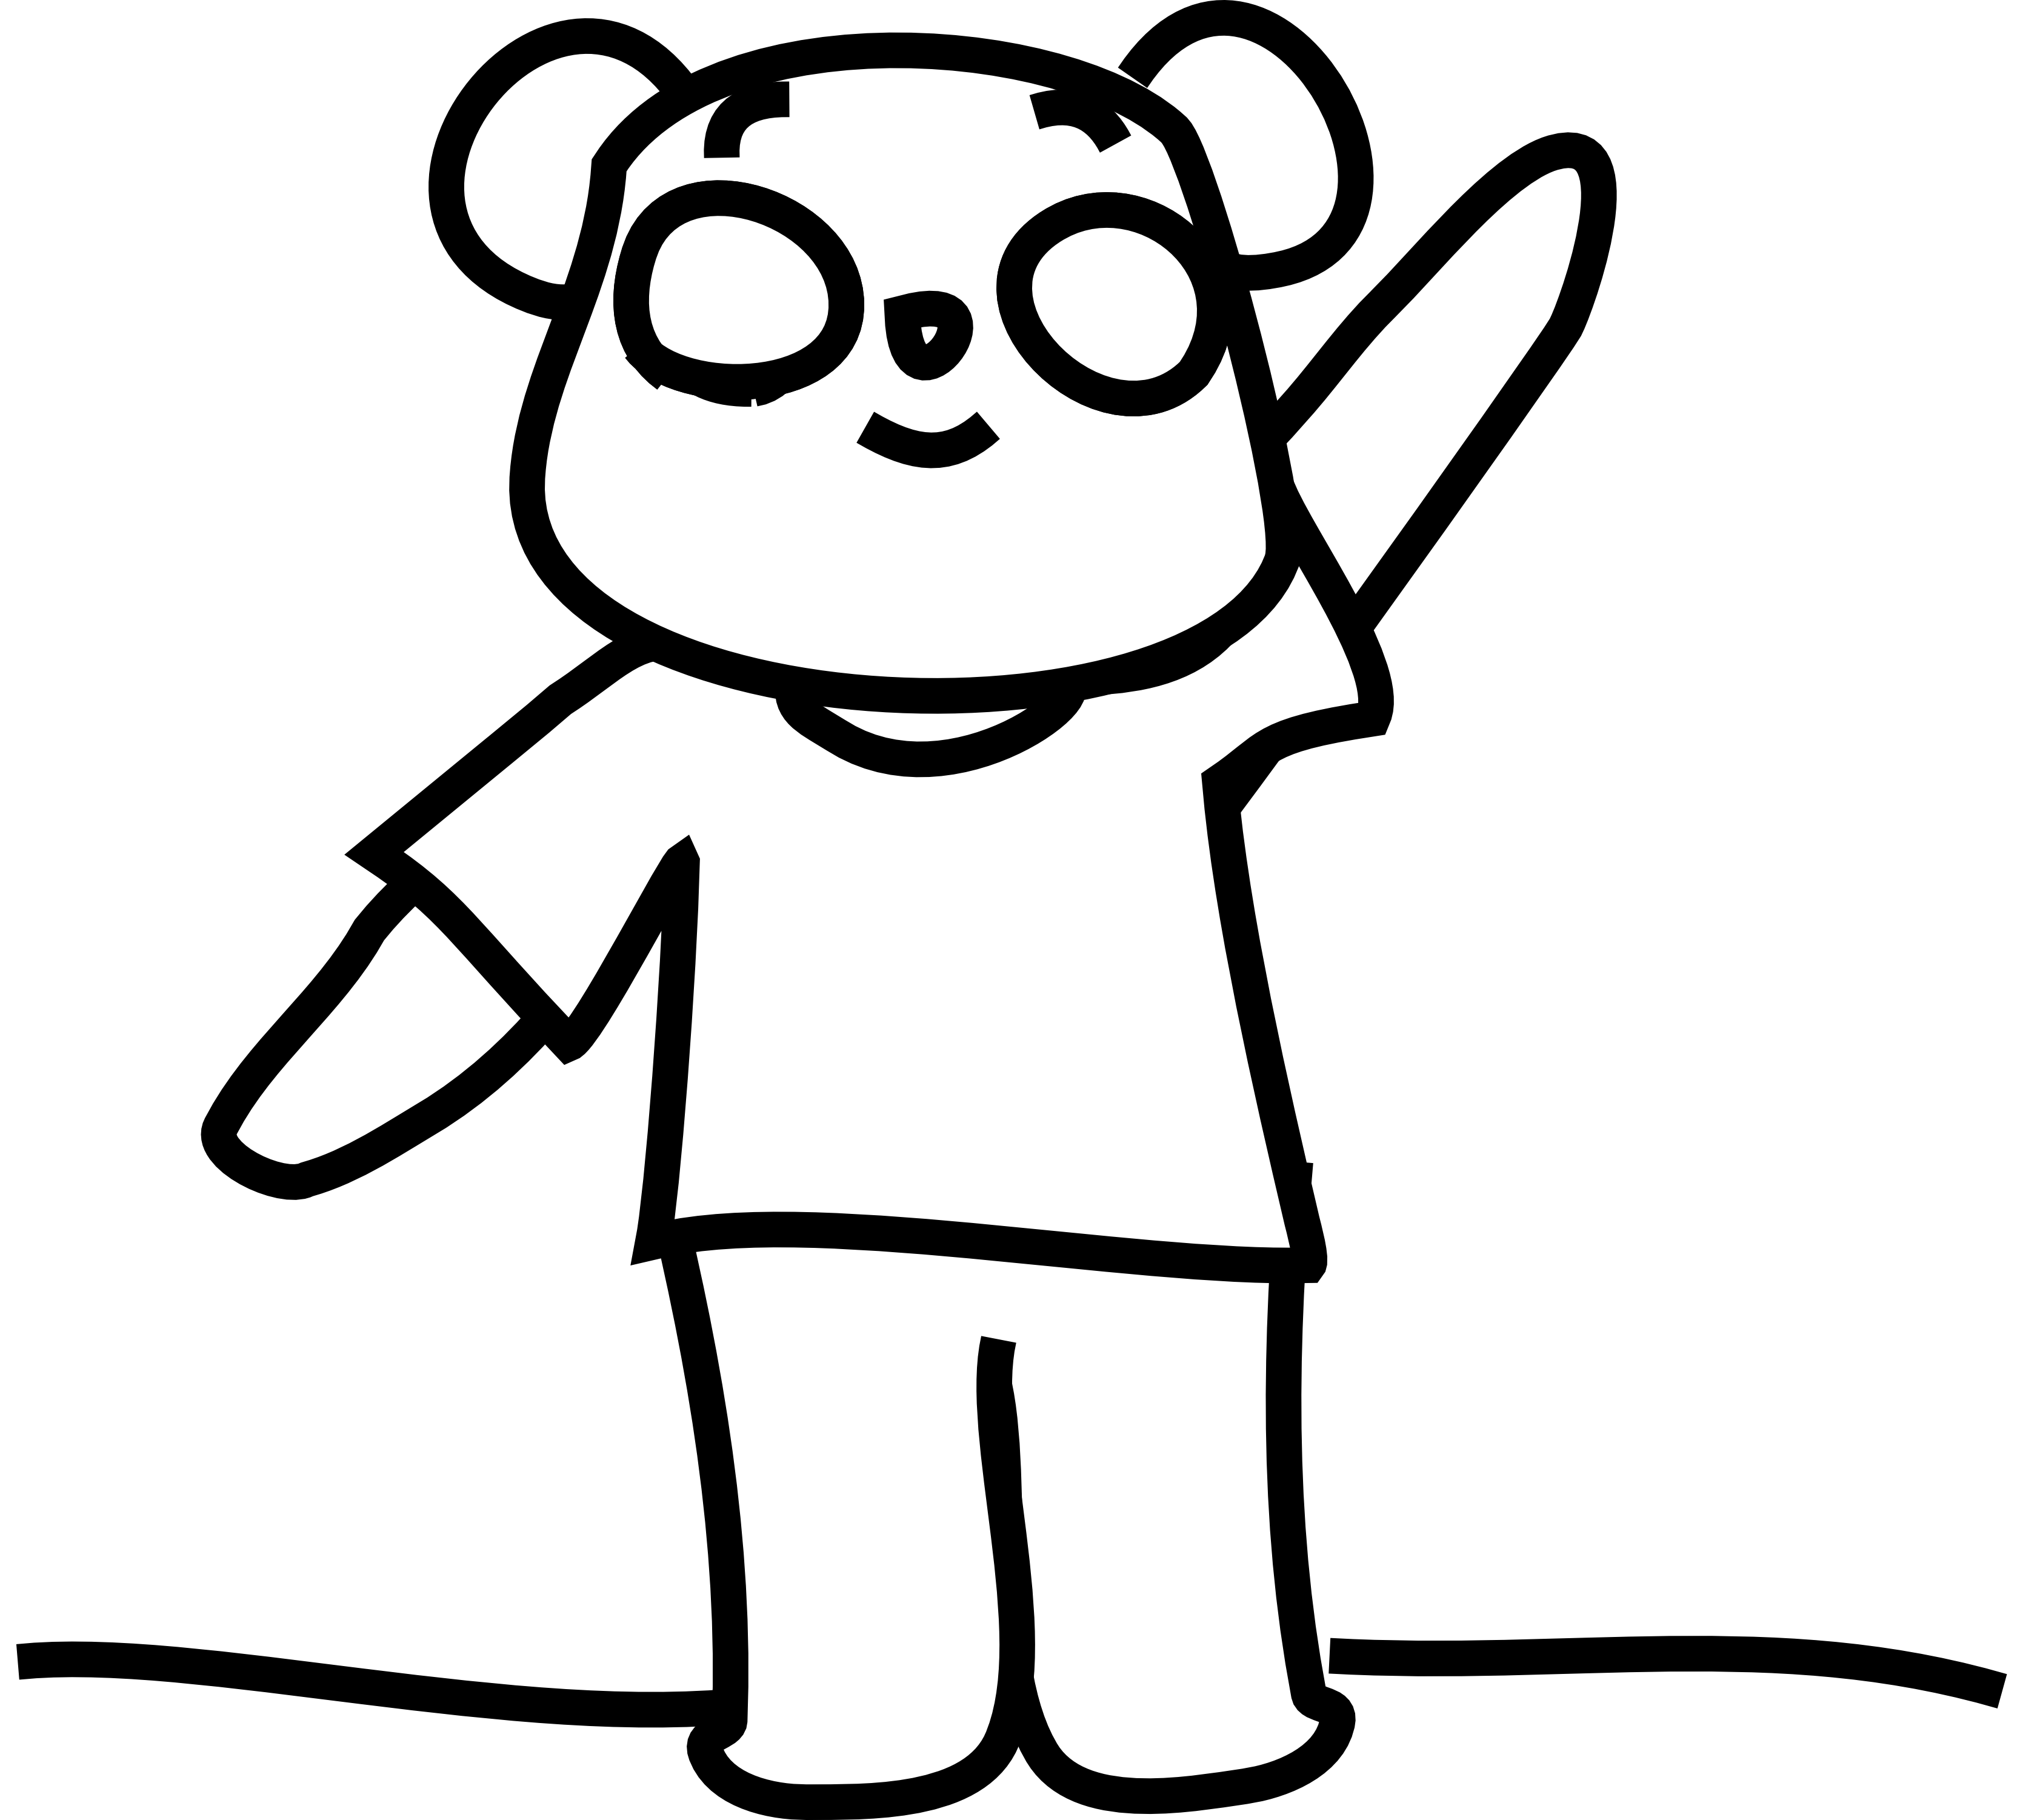 Feelings clipart black and white. Panda face free images